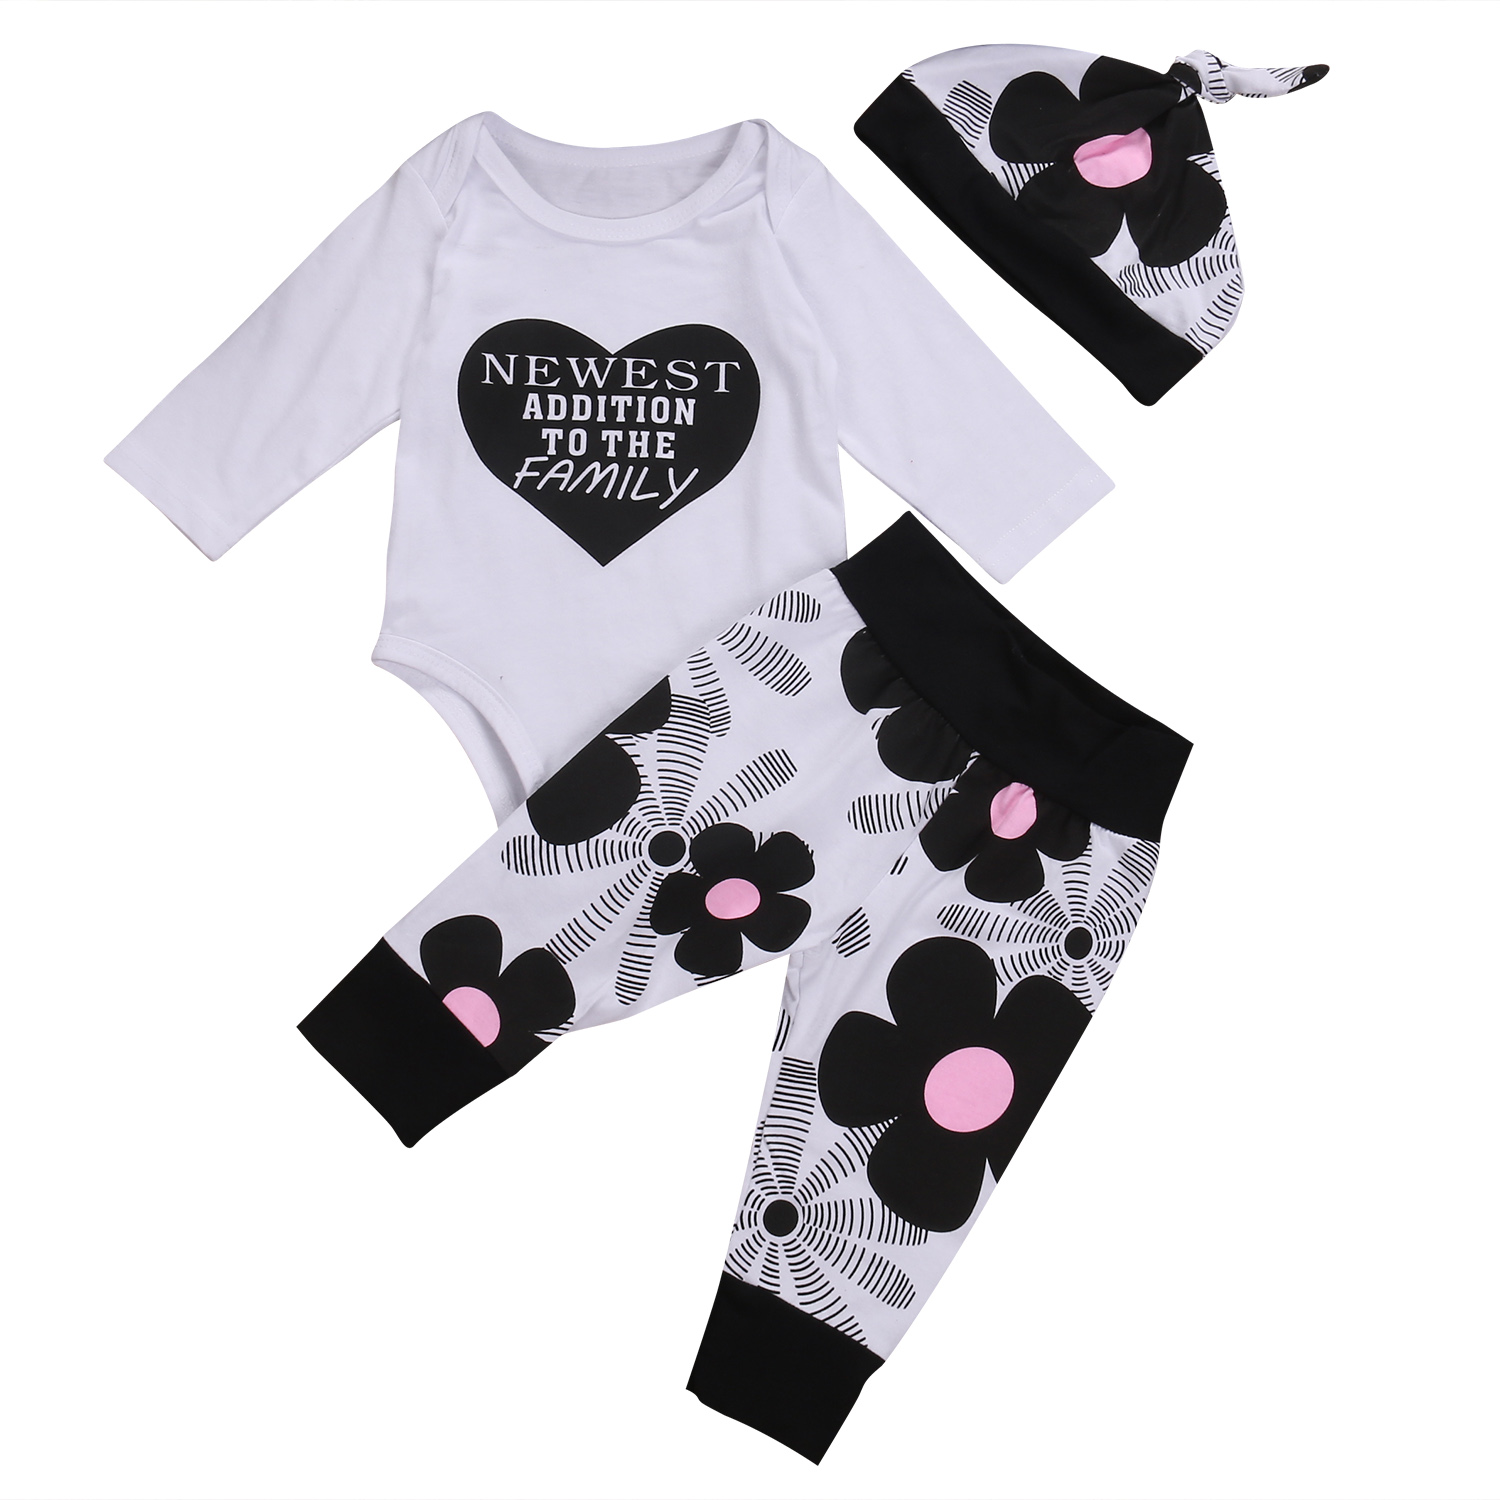 Newborn Infant Baby Boy Girl Cotton Tops Romper Pants baby girl clothes baby girl newborn baby girl clothes Outfits Set Clothes